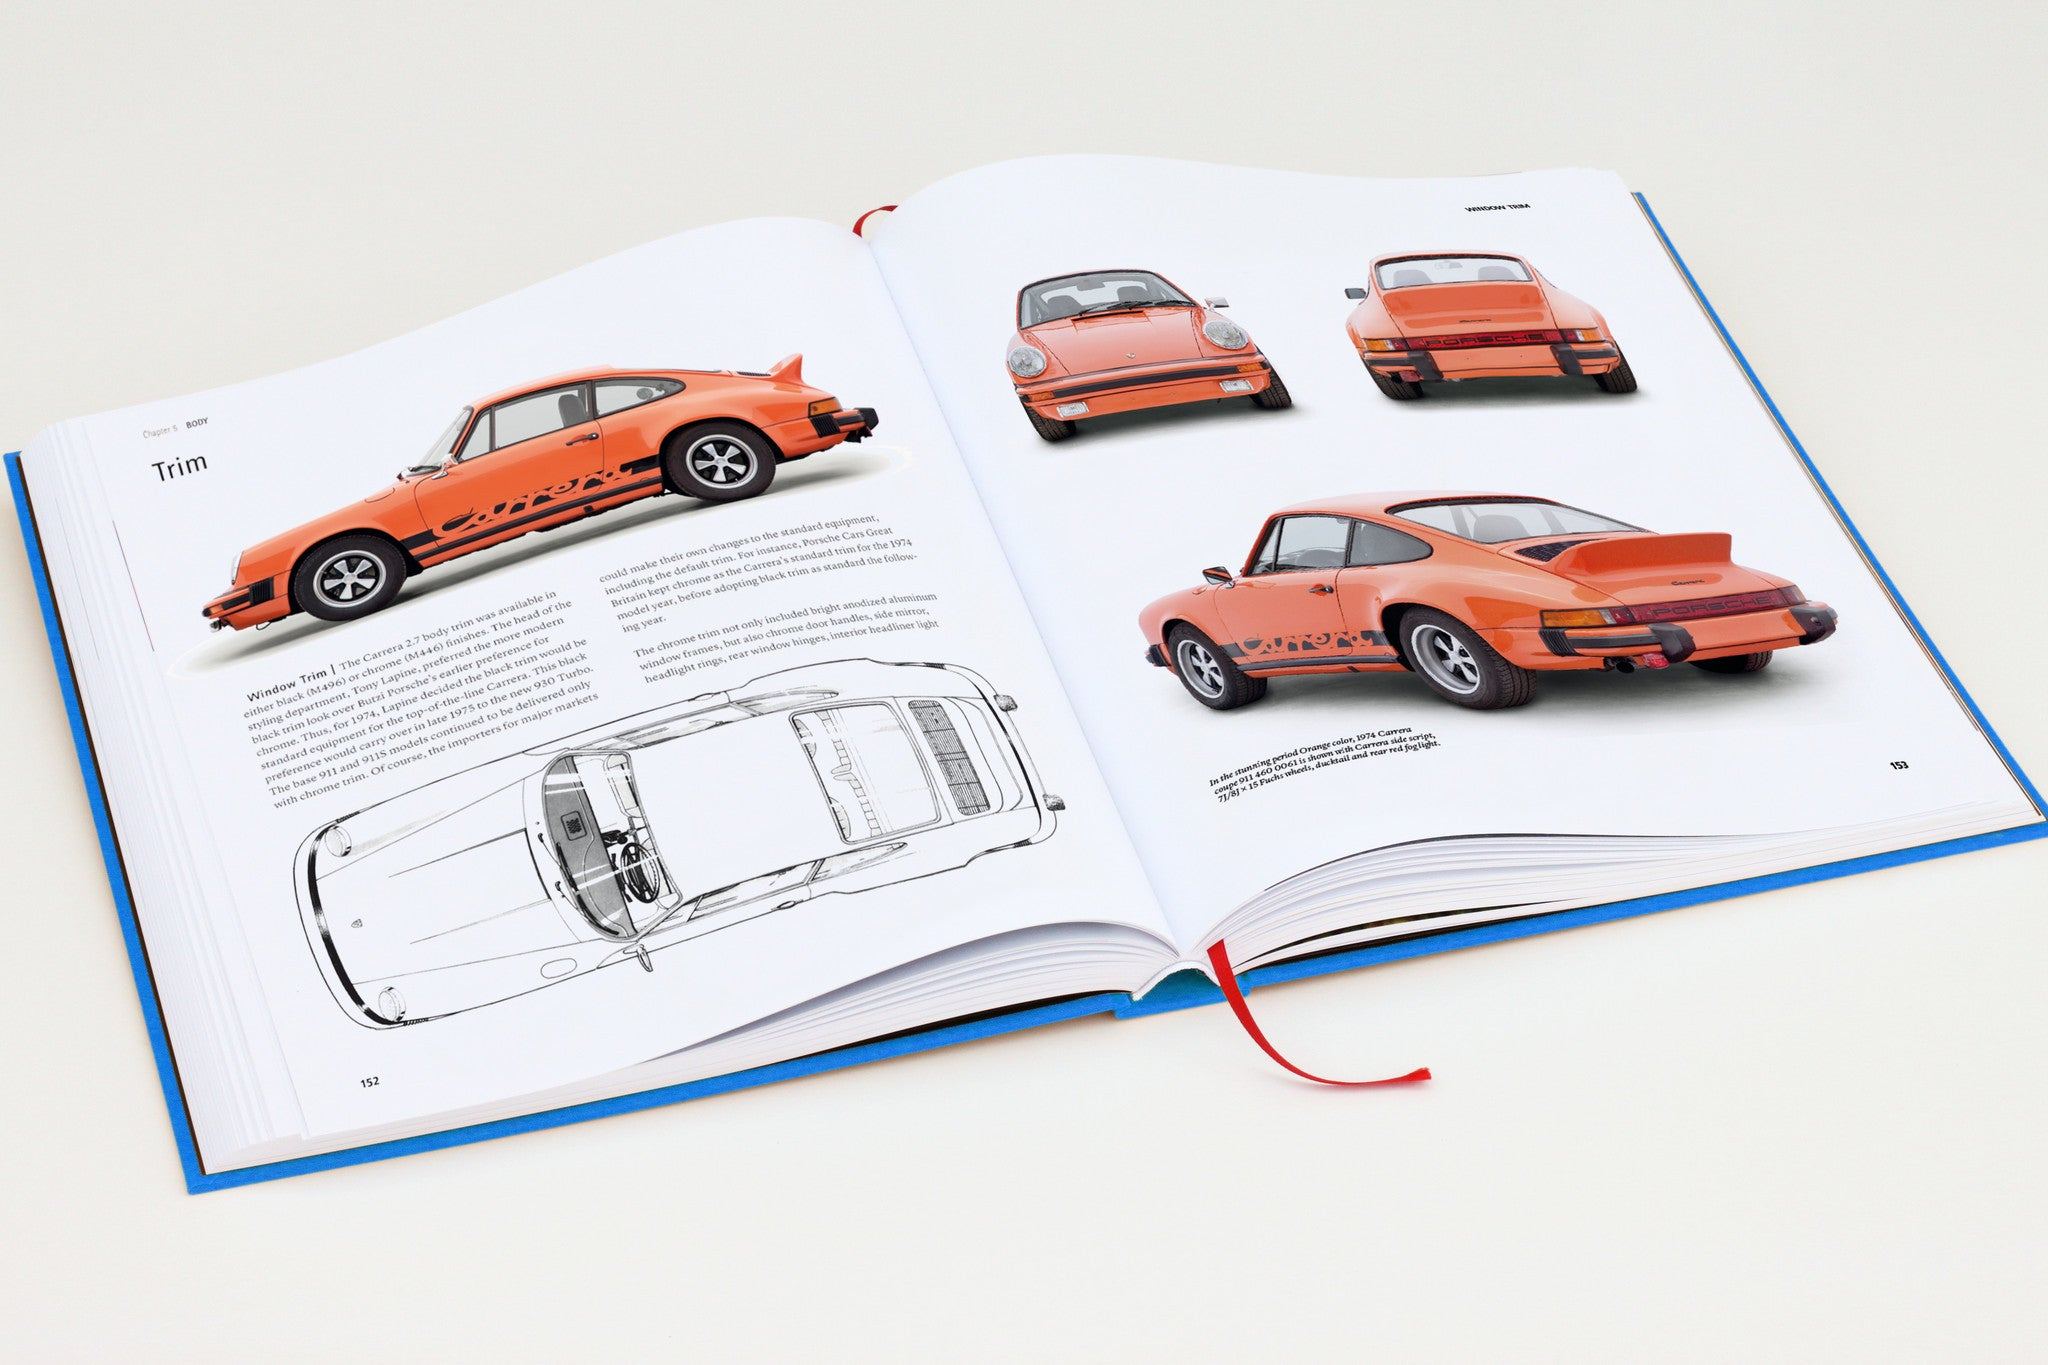 Book - Carrera 2.7 (Limited Edition)